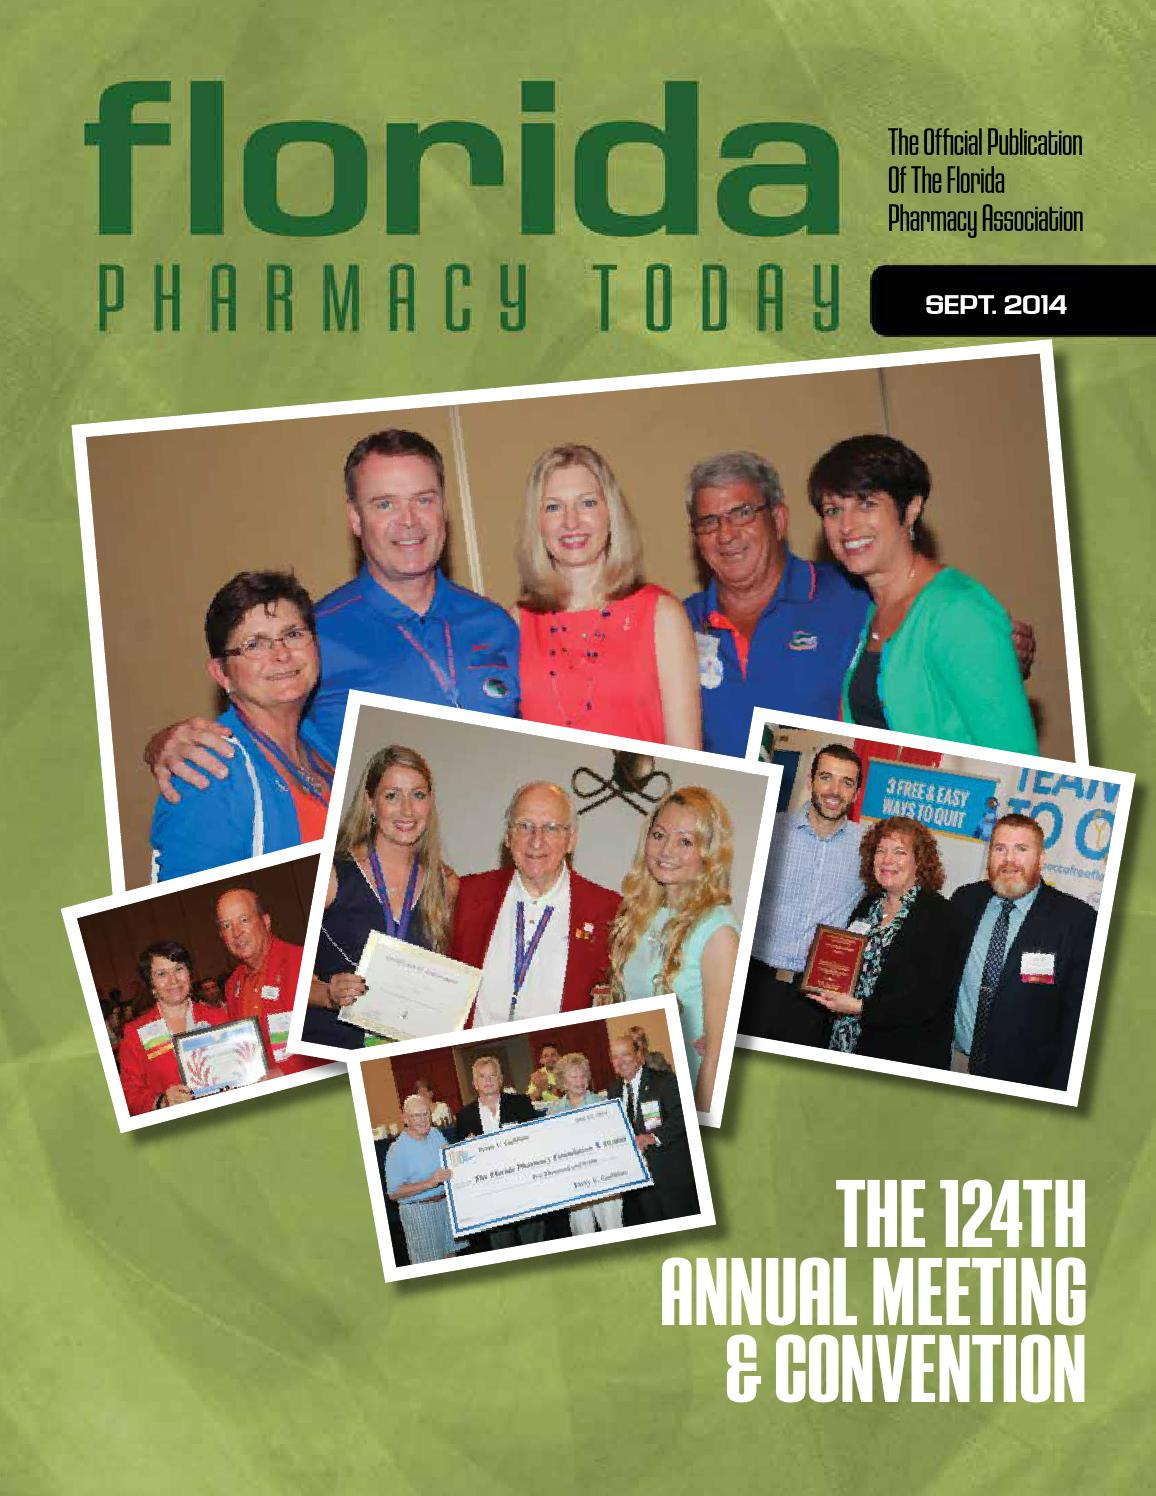 Healthcare alliance rxrelief - September 2014 Florida Pharmacy Journal By Florida Pharmacy Today Issuu